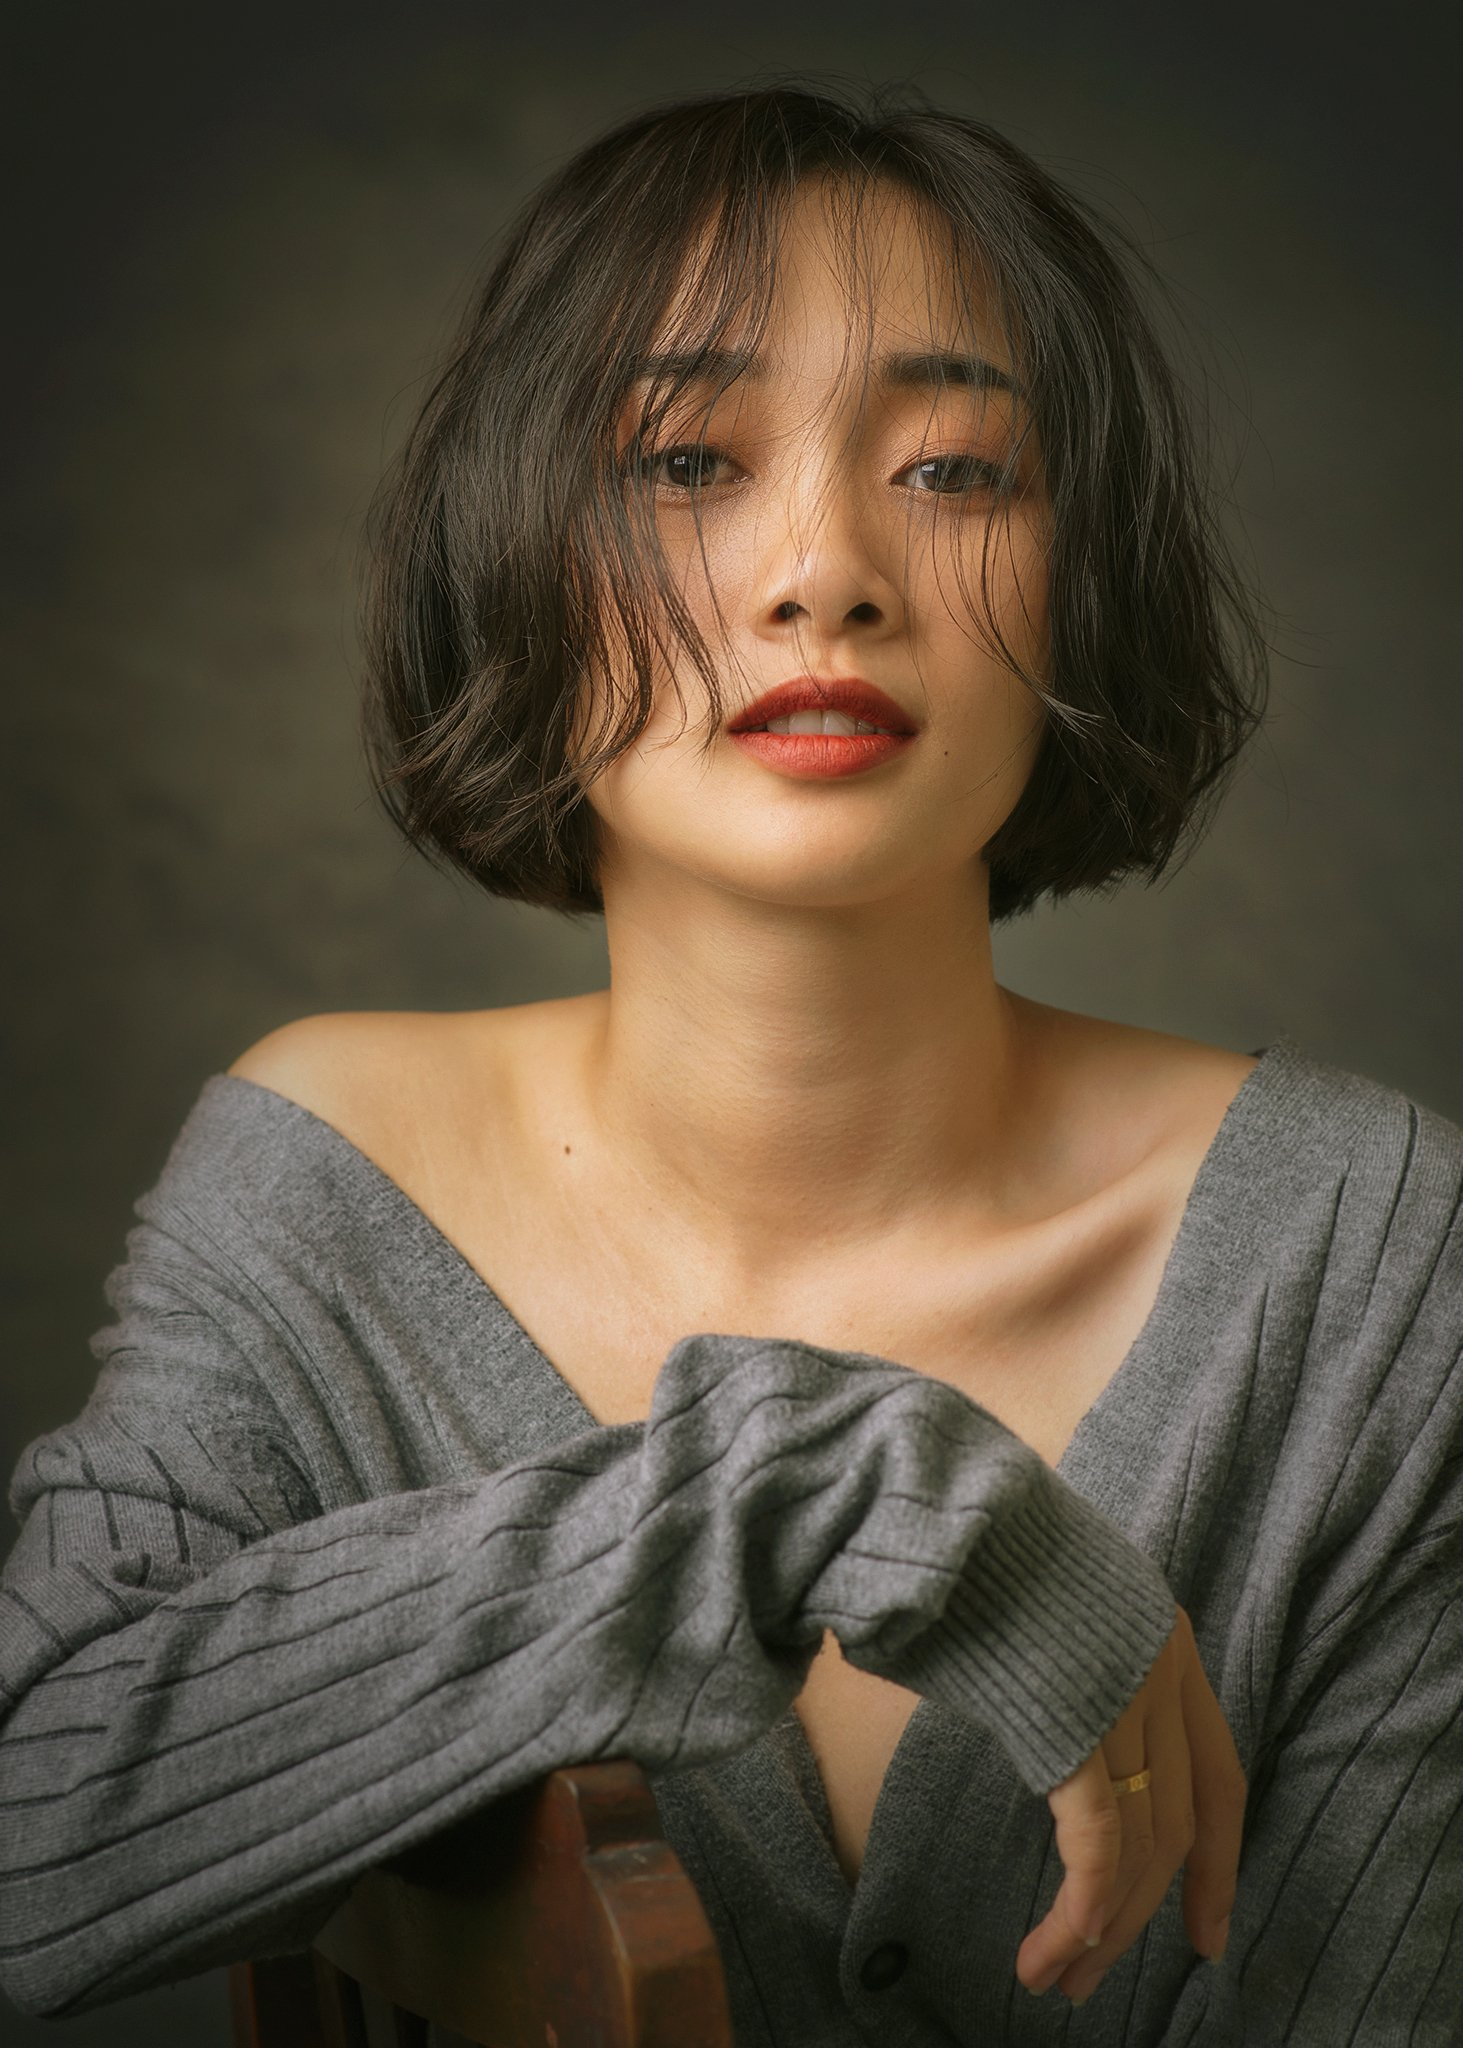 portrait, female, woman, girl, asian, vietnam, vietnamese, young, face, beauty, glamour, studio, eyes, short hair, hairstyle, Hoang Viet Nguyen